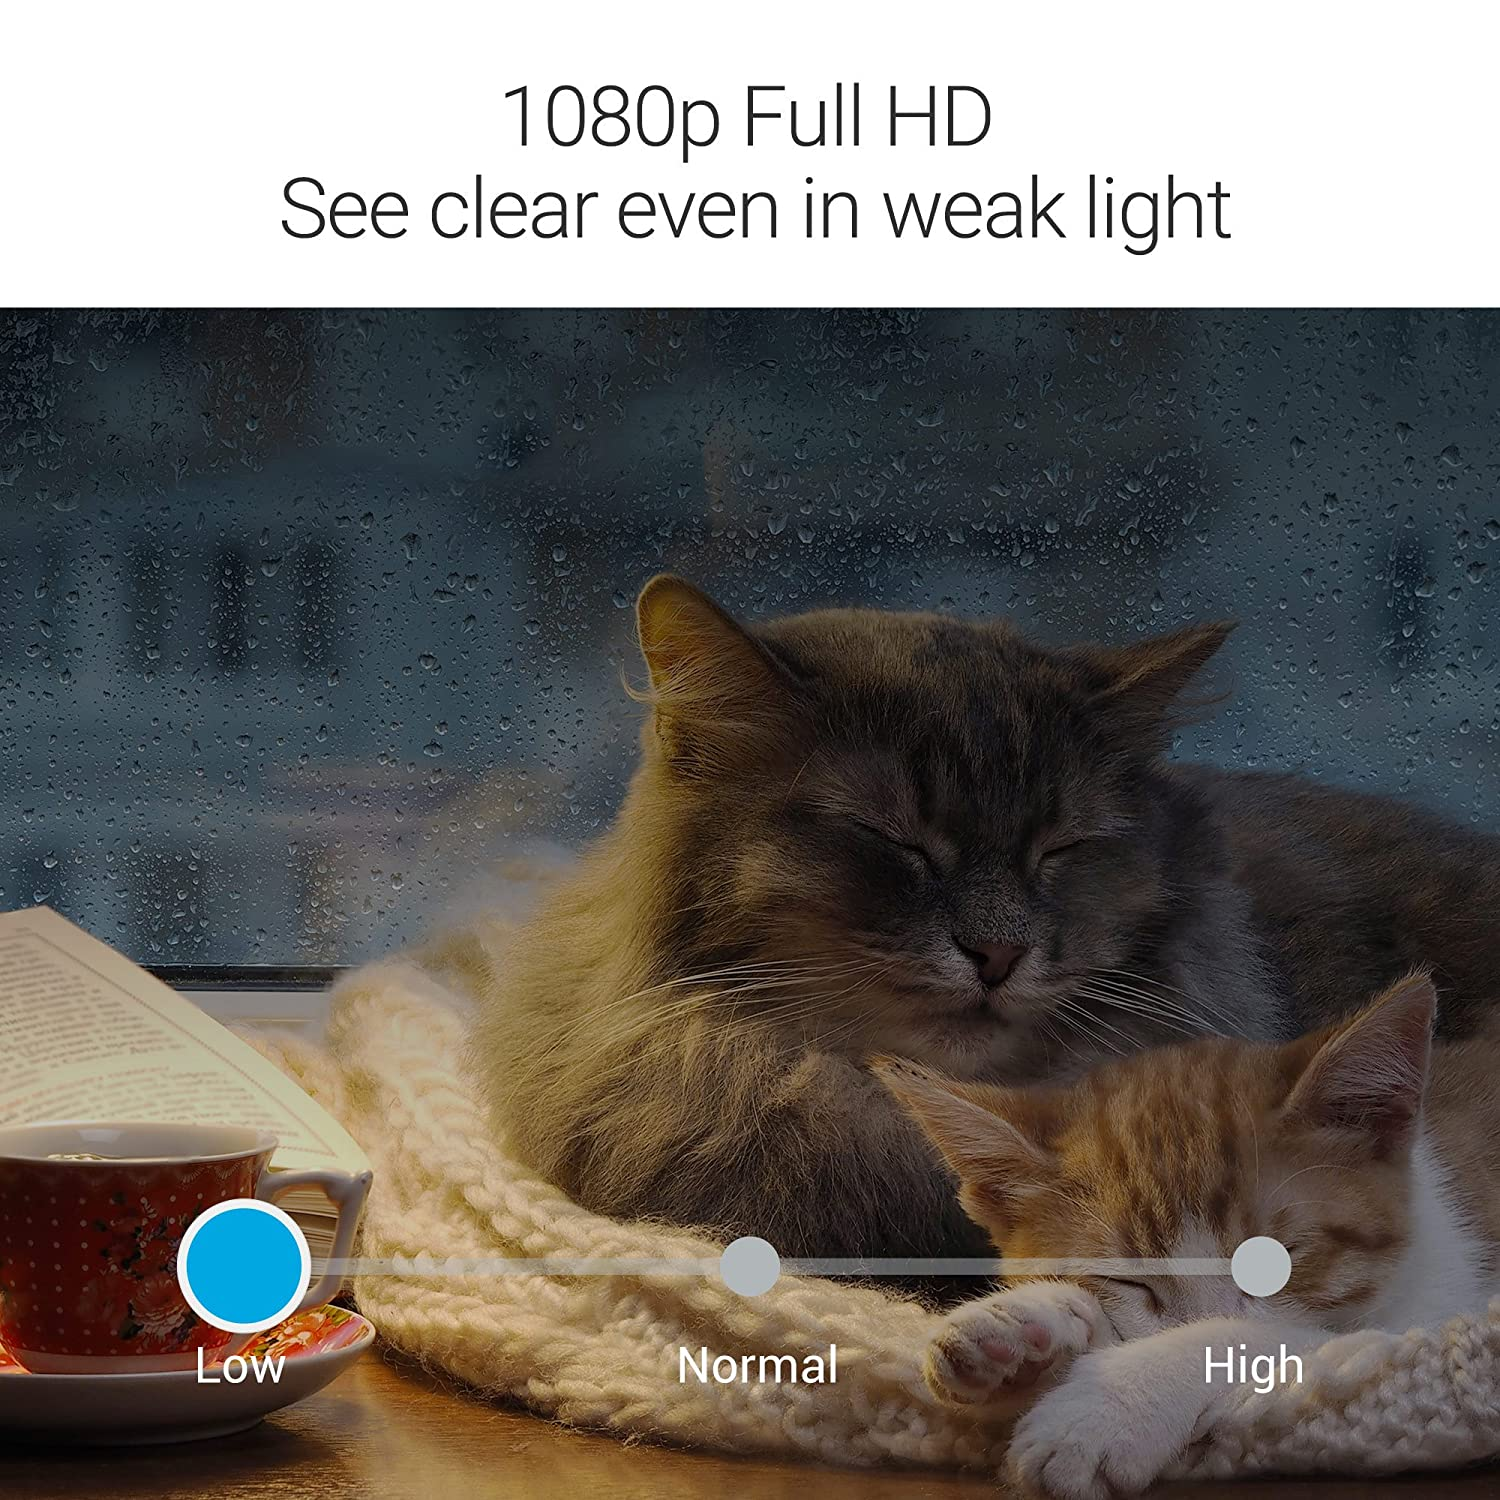 Zmodo Sight 180 Home Security Camera Two Way Audio Night Vision Works with Alexa Motion Detection Full HD 1080p Wireless Indoor IP Camera System with 180 Degree Viewing Angle